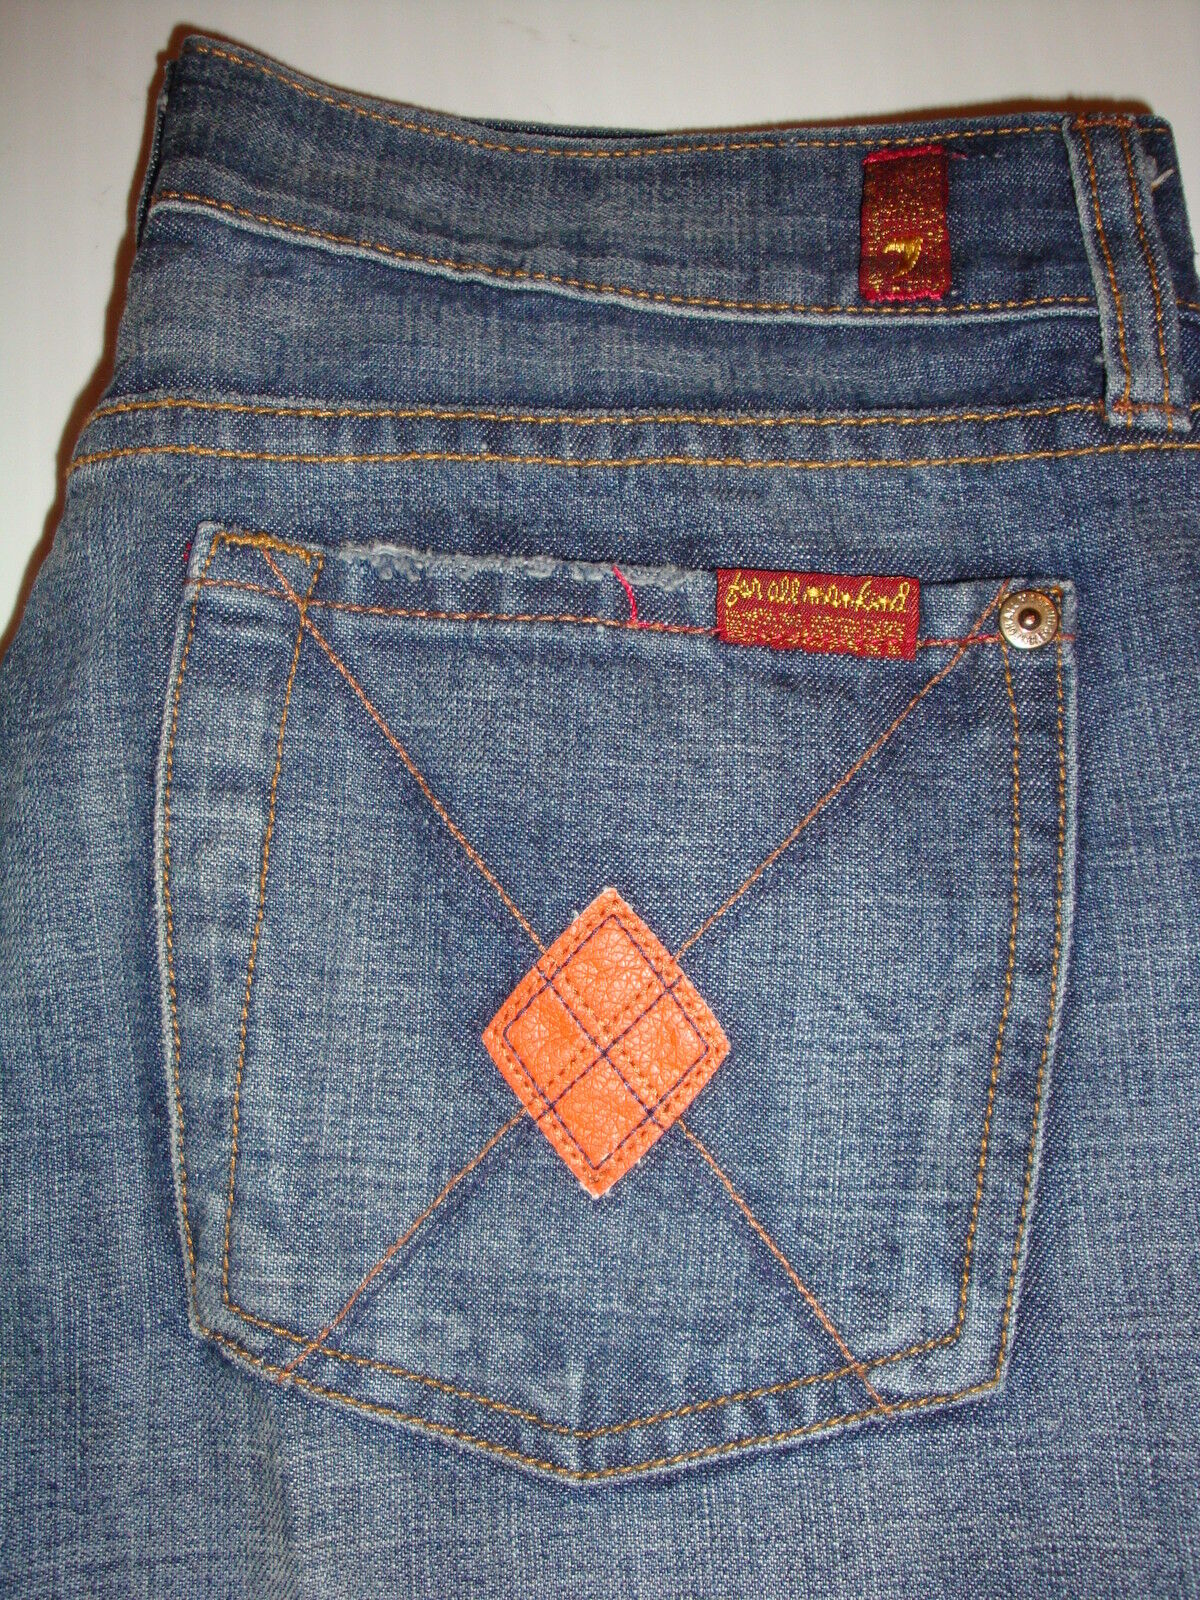 Seven 7 For All Mankind Jeans 27 x 32  Slim Fit Women's NICE CUTE MINT